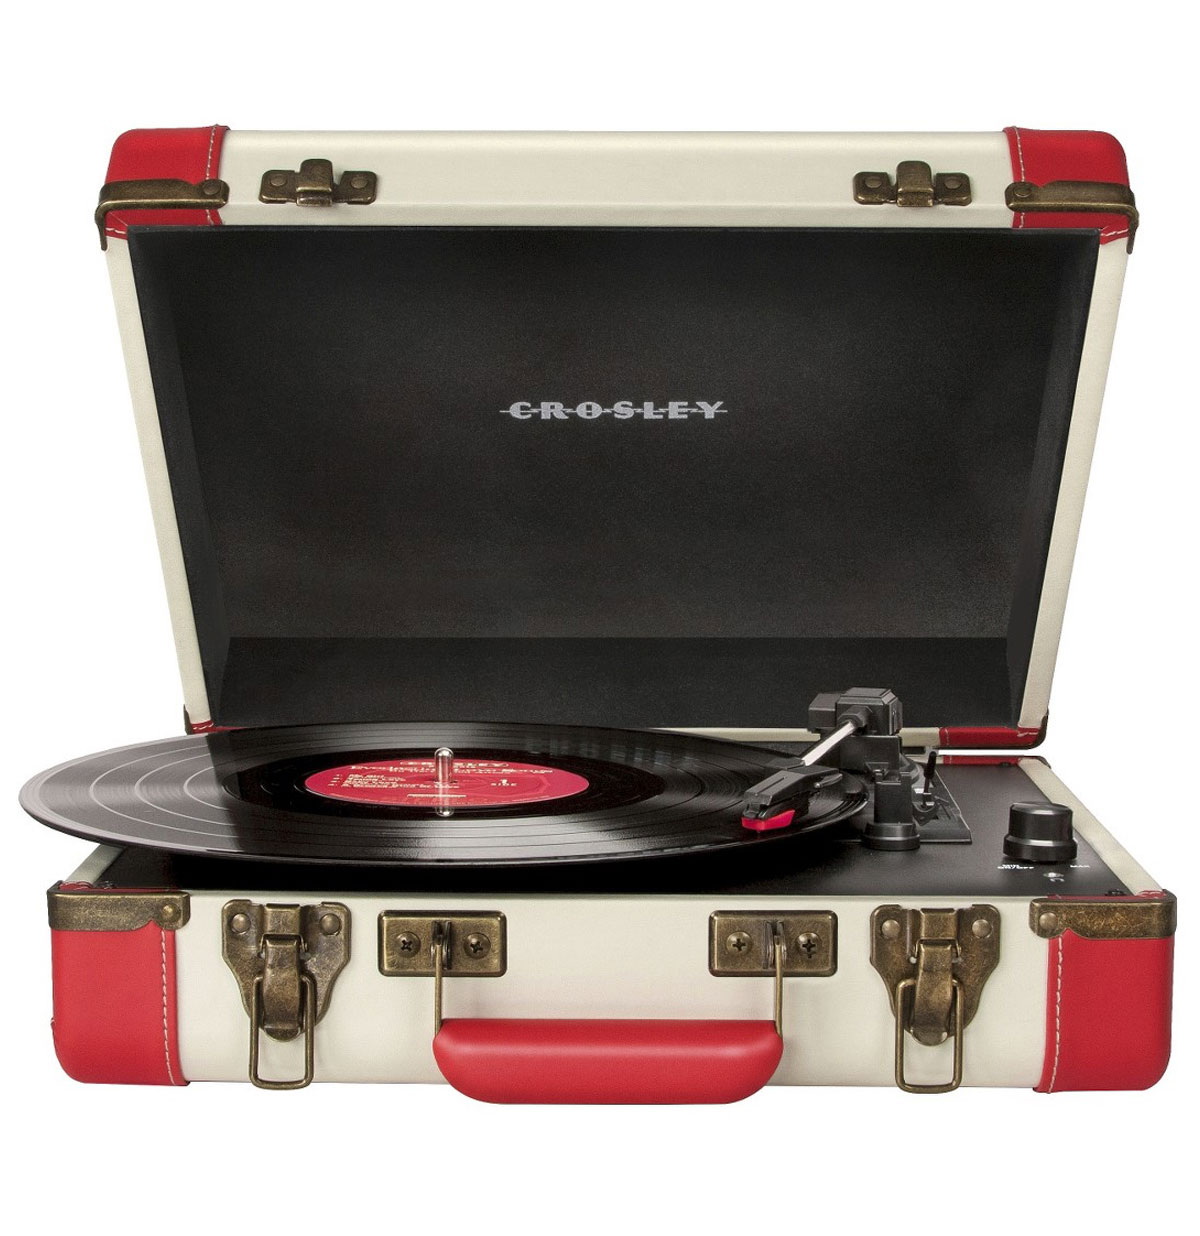 Crosley Executive Portable USB Platenspeler - Rood/Creme